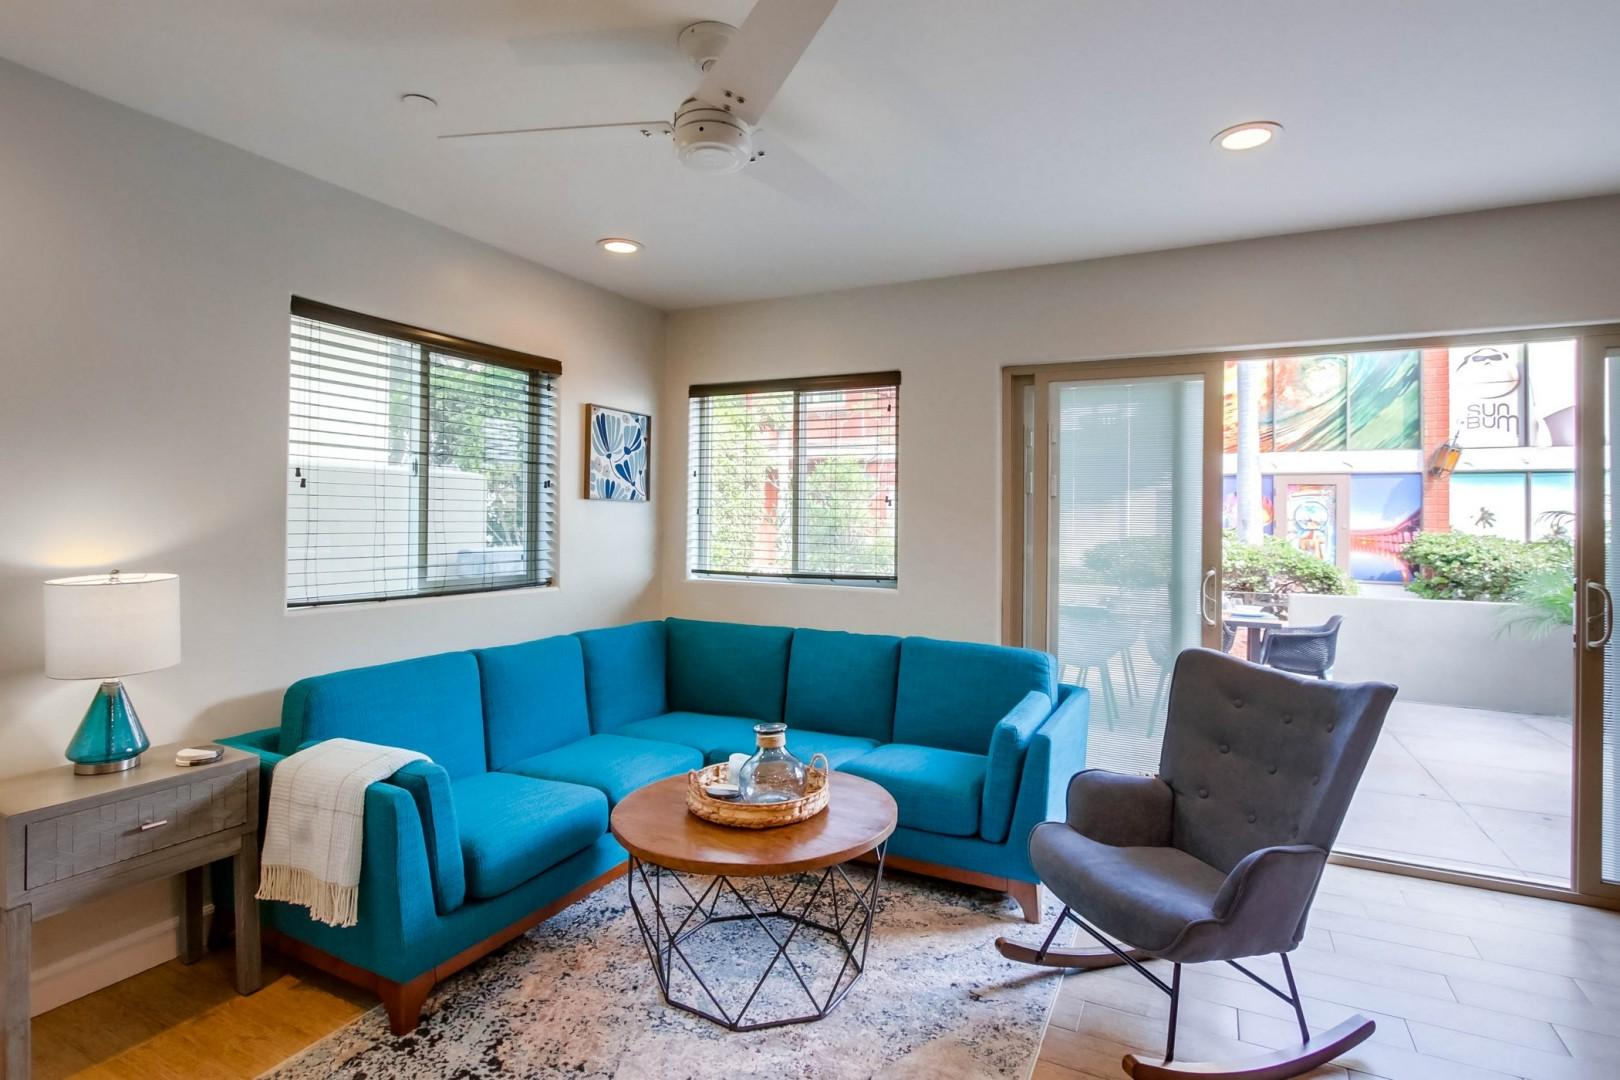 Sectional seating in the living area